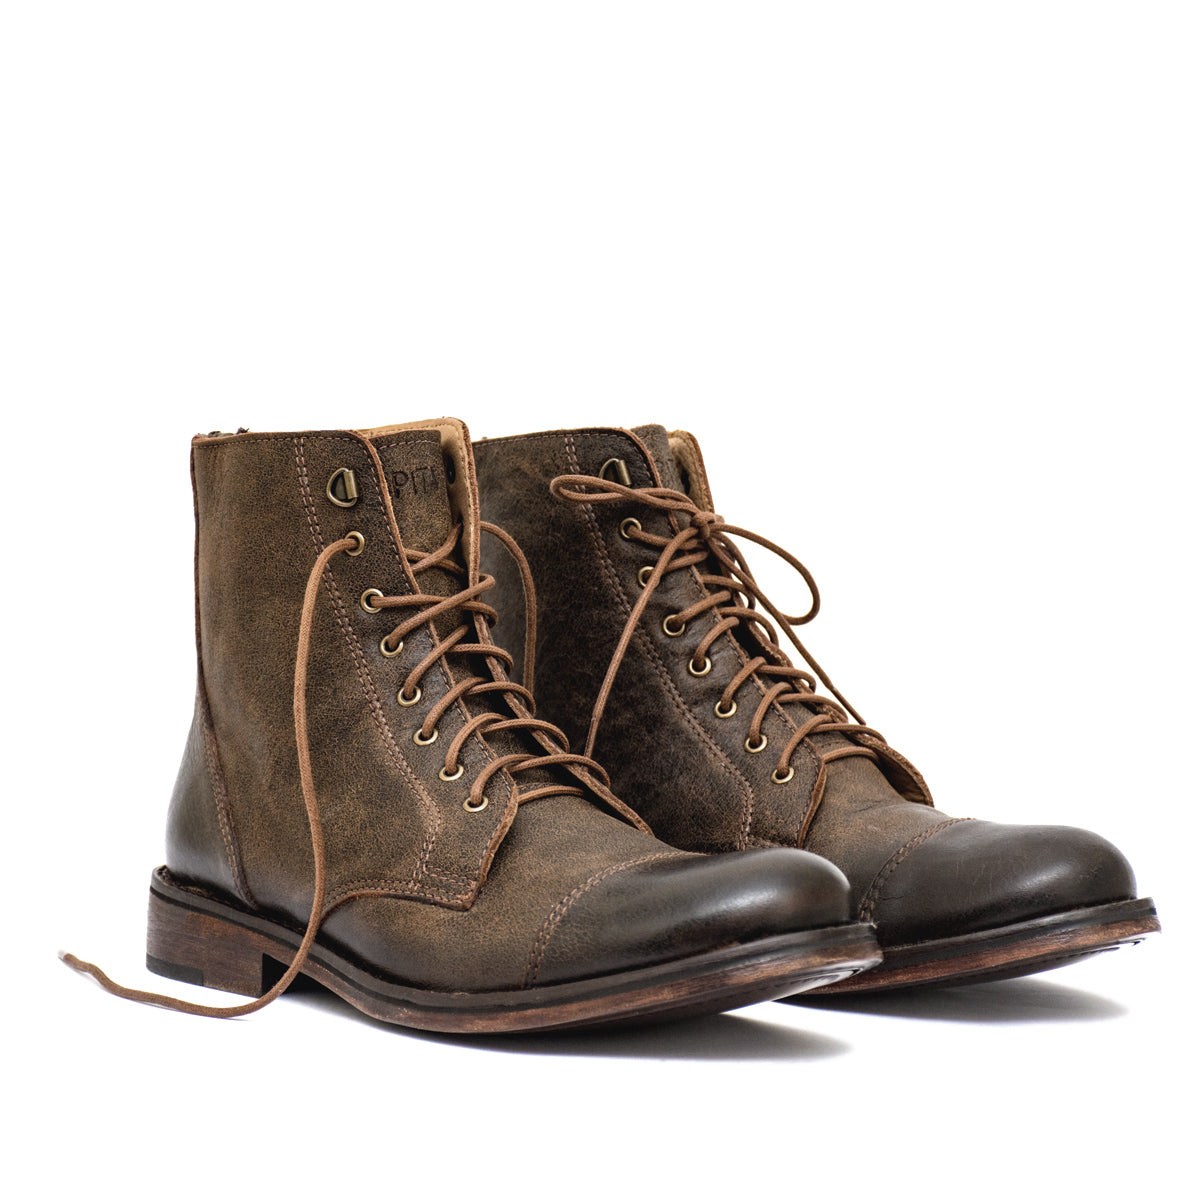 Atacama - leather boots